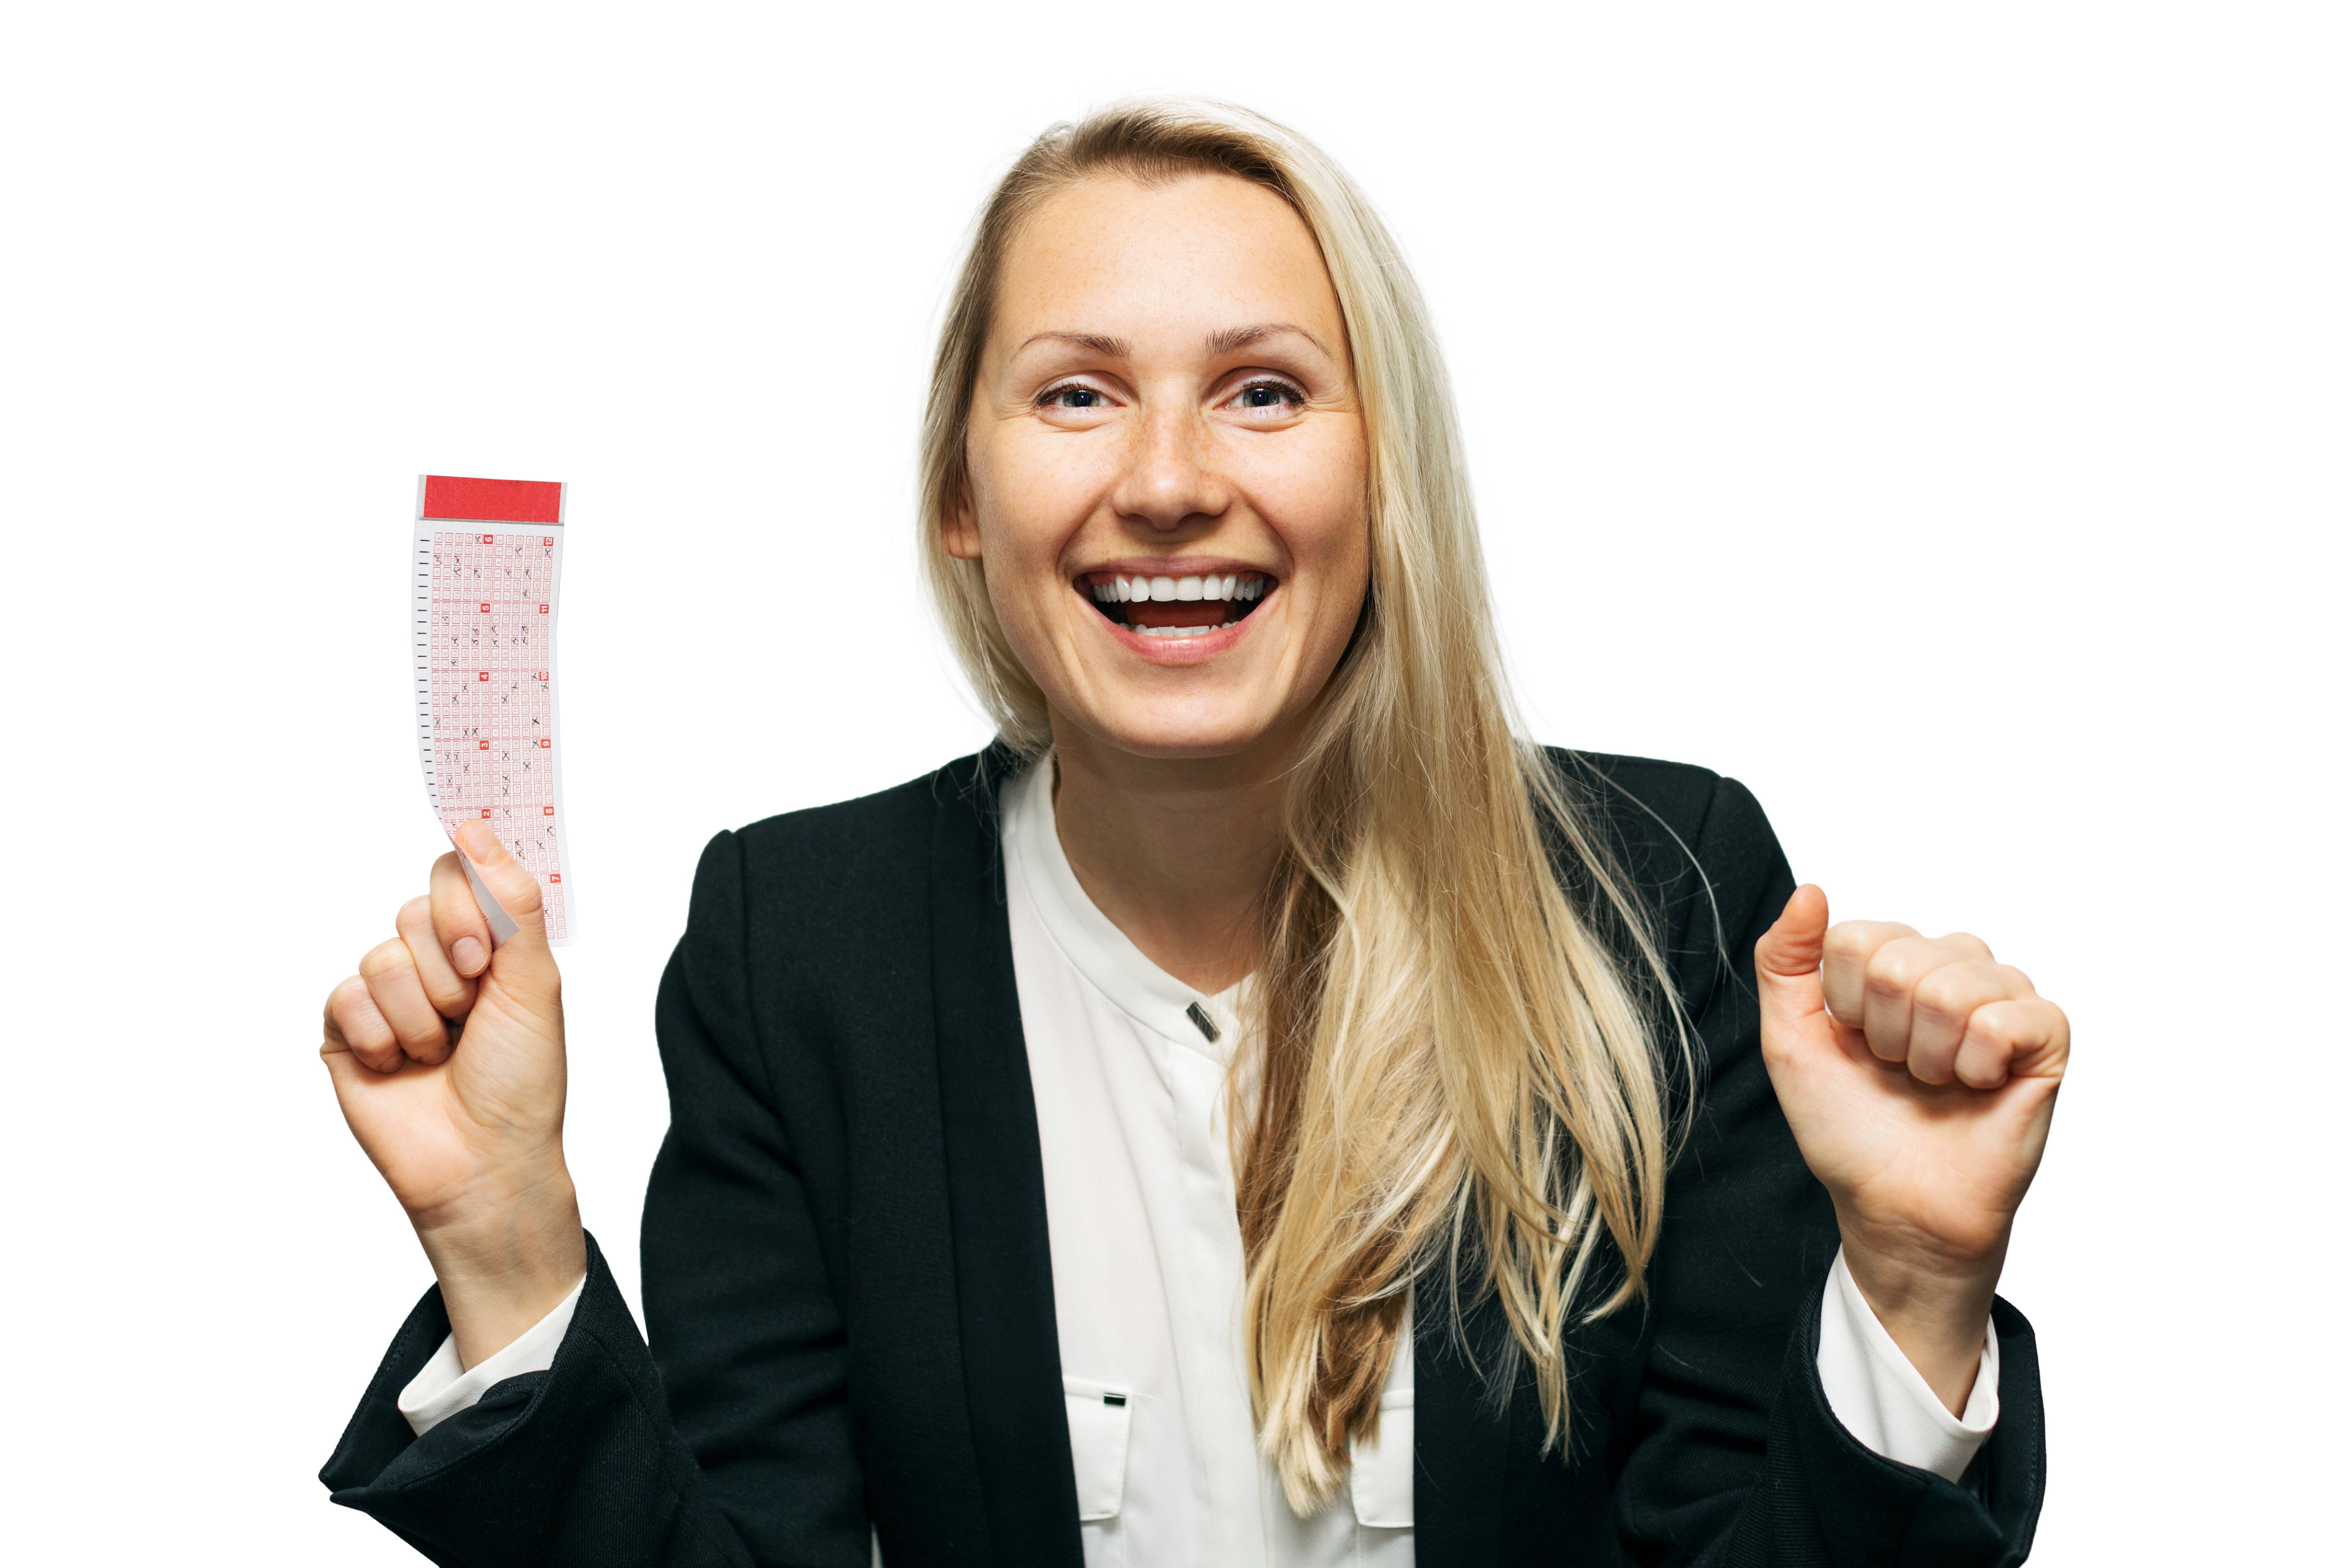 An ecstatic woman with a smile on her face holding a lottery ticket. | Photo: Shutterstock.